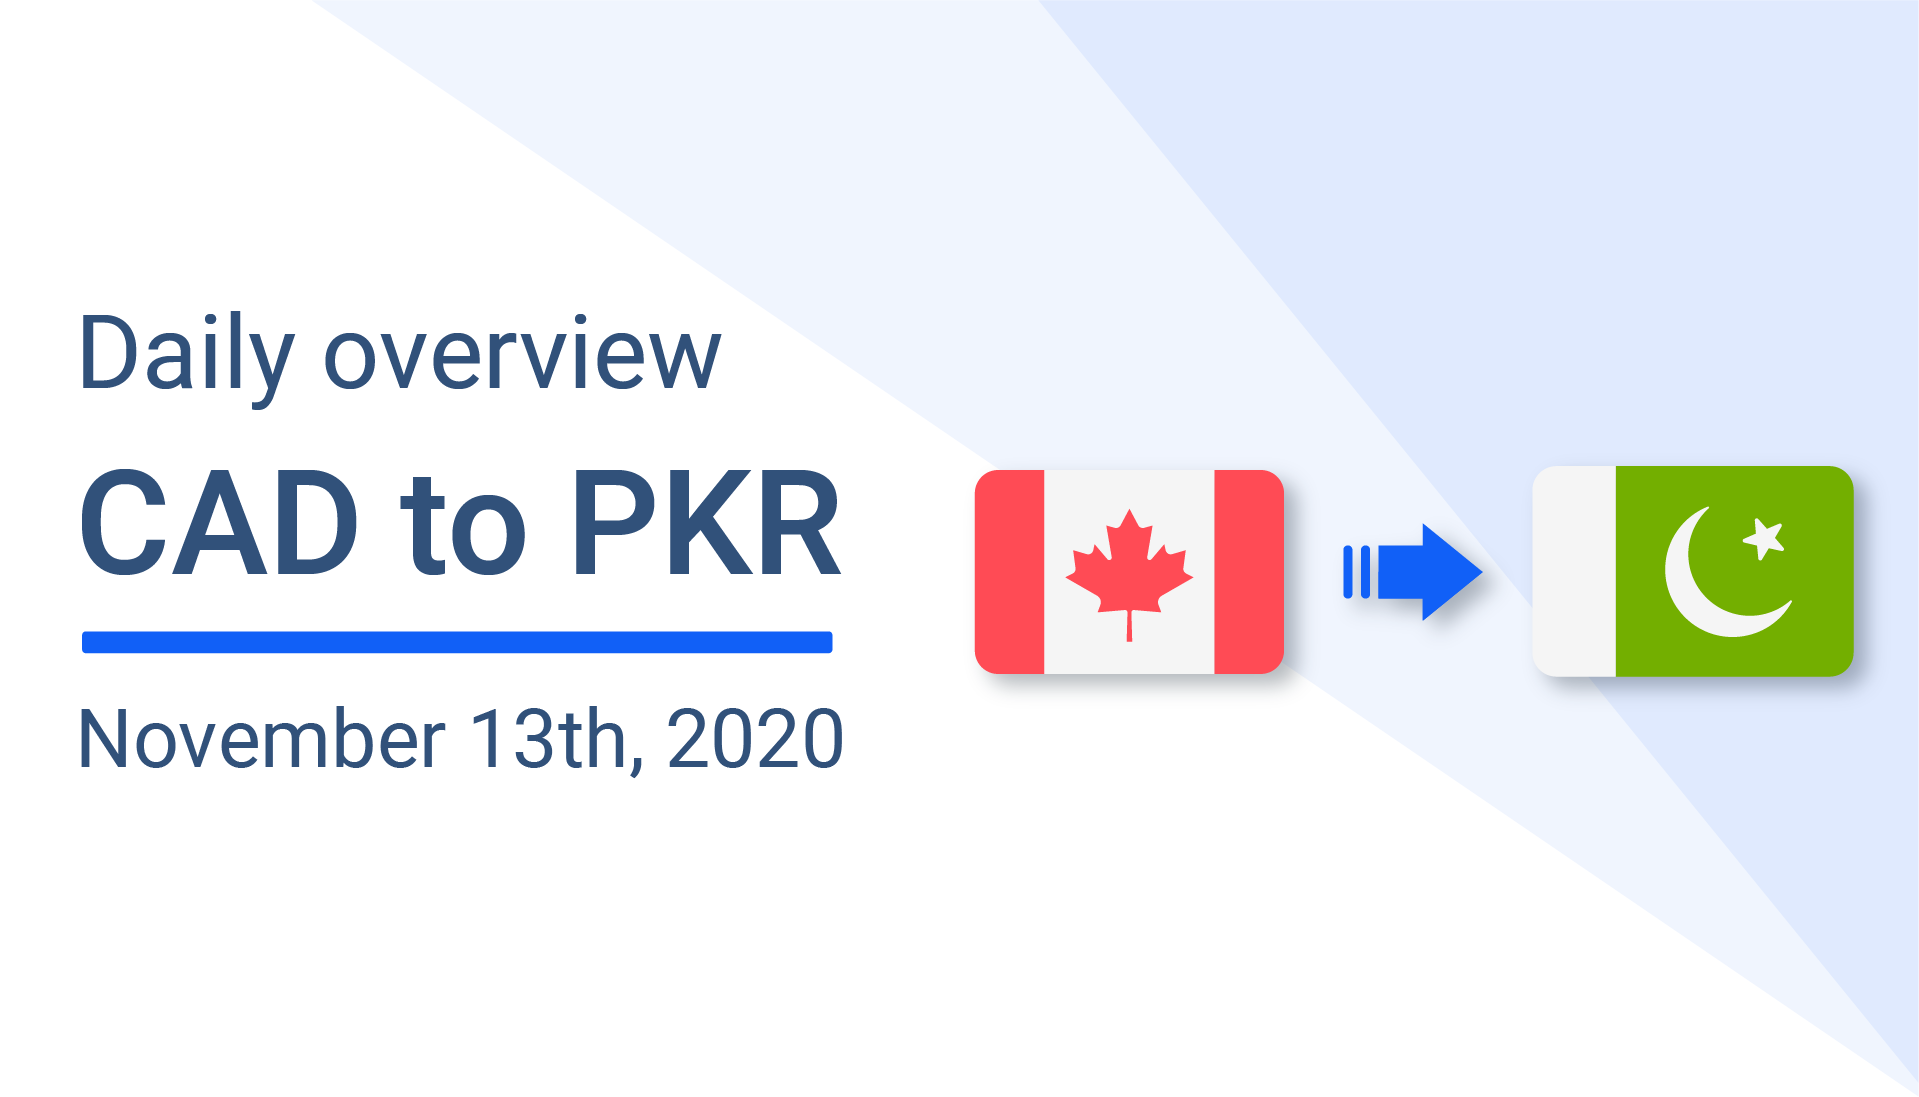 Canadian Dollar (CAD) to Pakistani Rupee (PKR) Daily Overview: November 13th